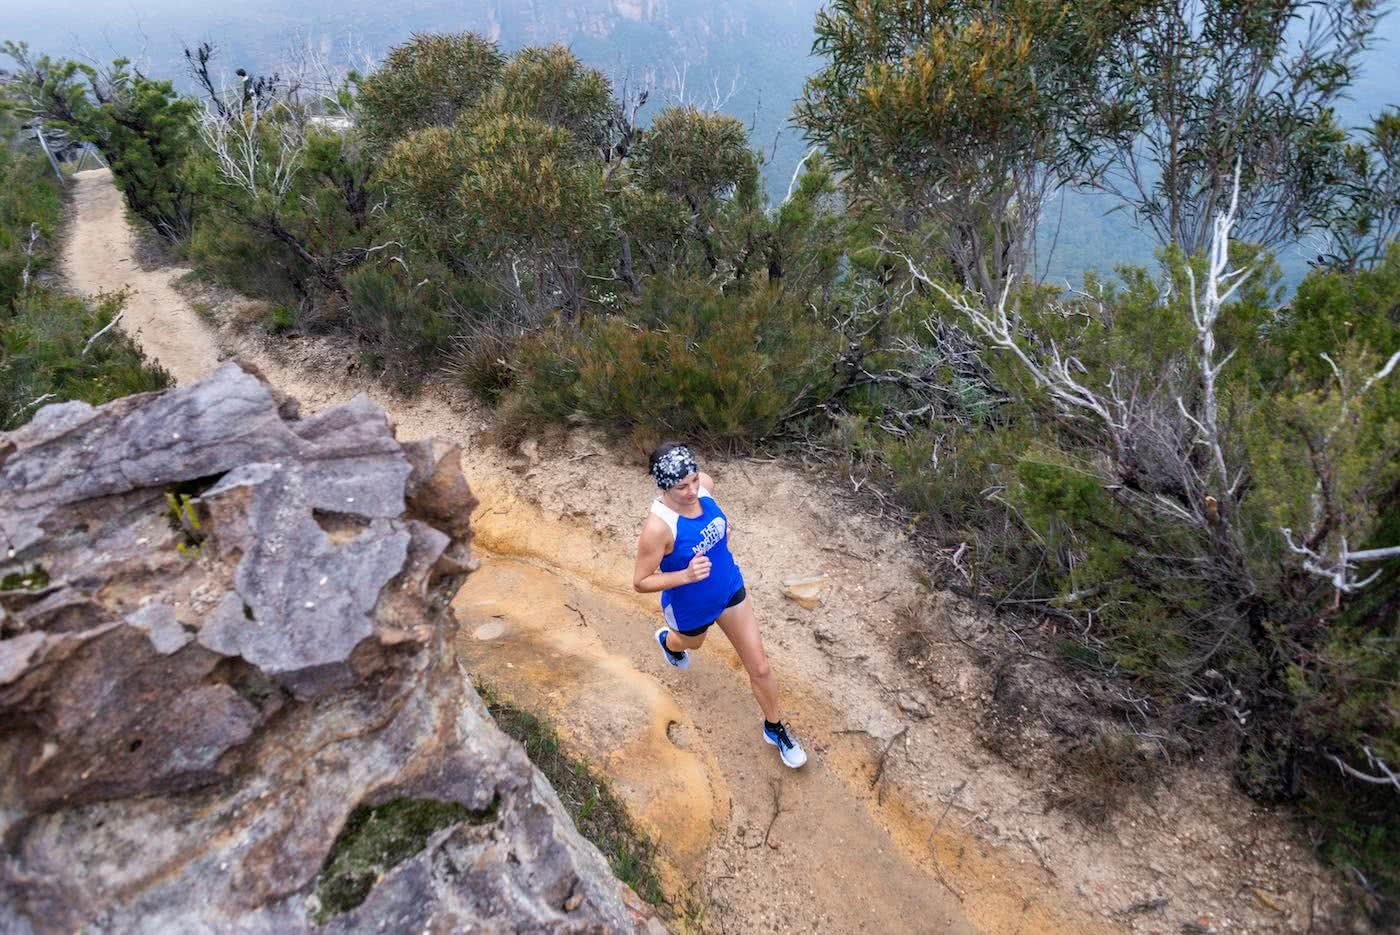 The North Face Pros Reveal Their Favourite Trail Runs, Victoria Beck, Photo by Jim Skouras, Blue Mountains, NSW, Trail running month